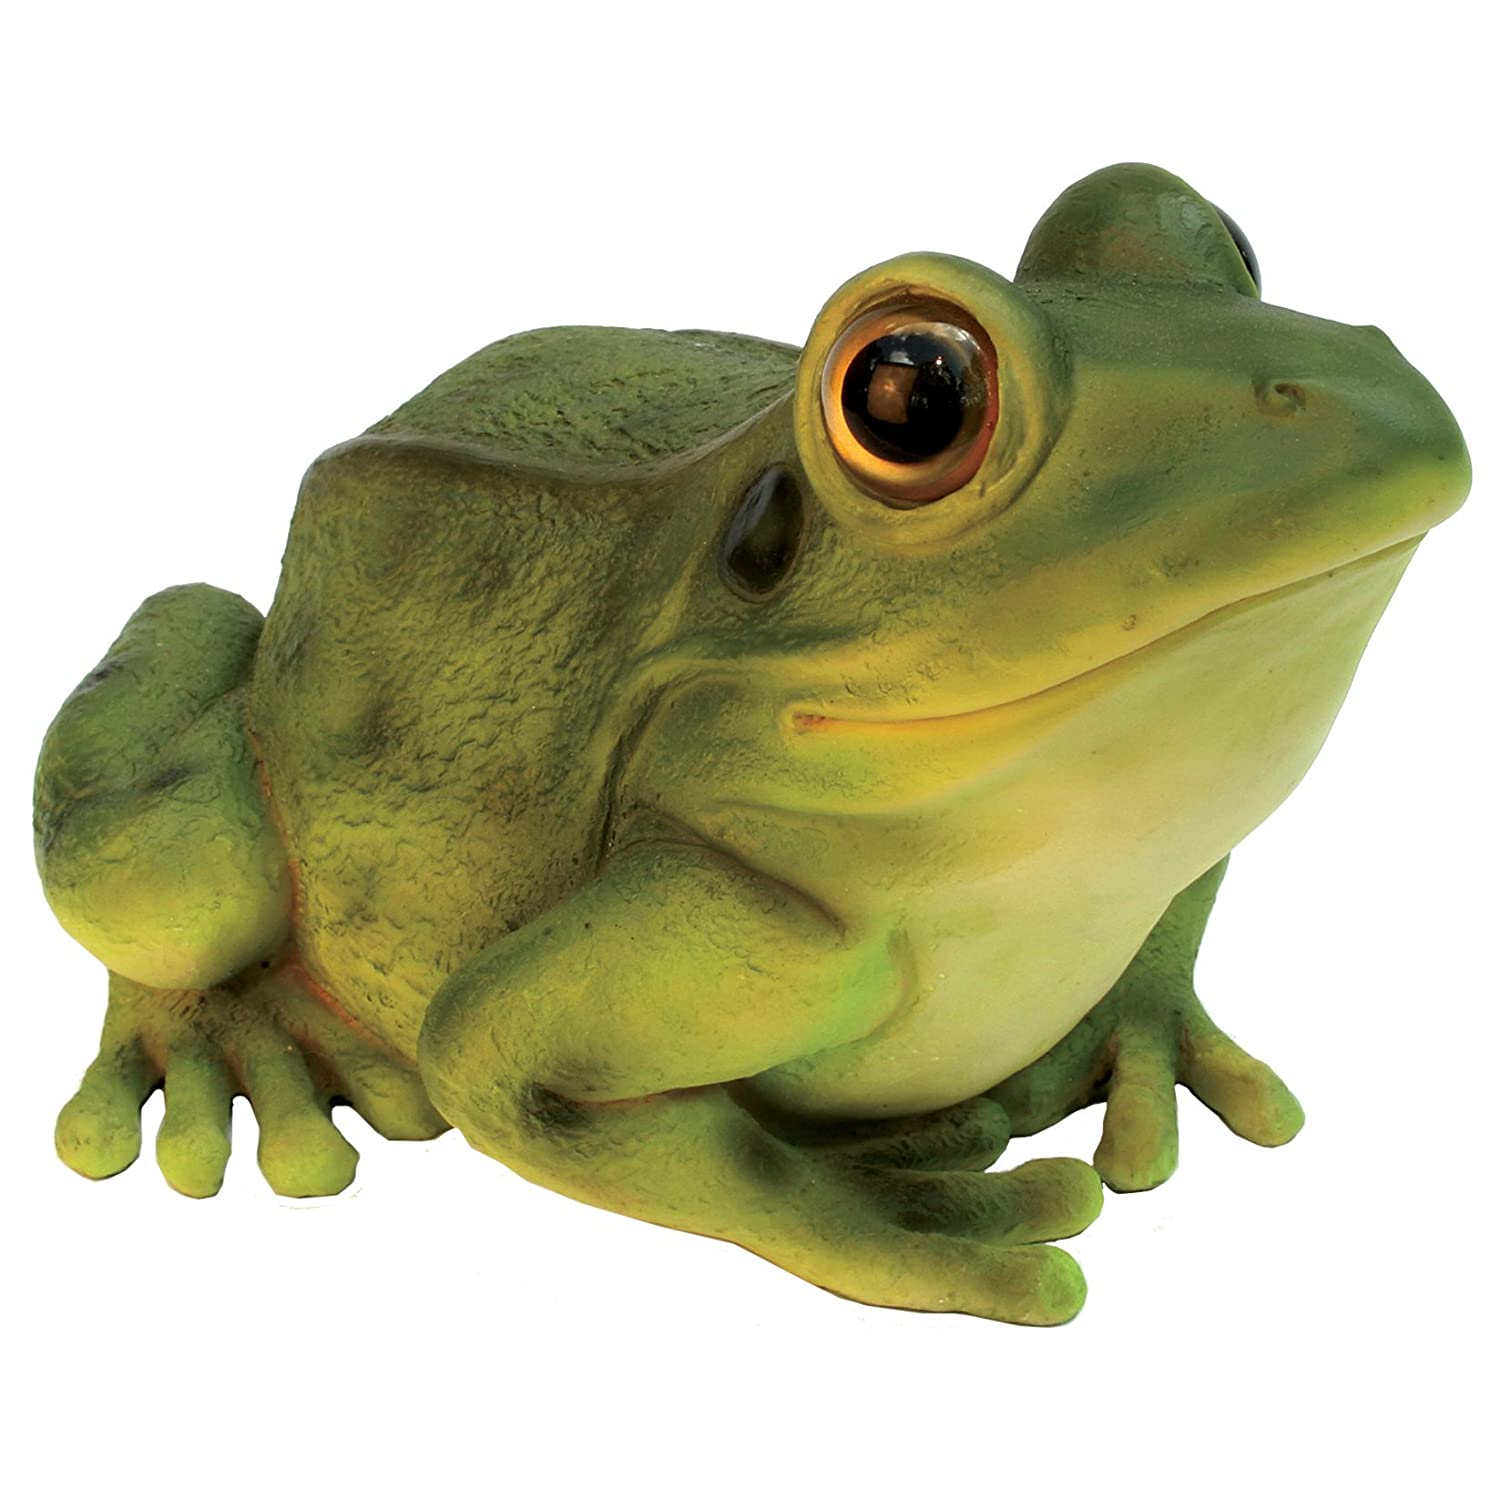 Michael Carr Designs 508002BG Green Frog Outdoor Statue (Discontinued by Manufacturer)